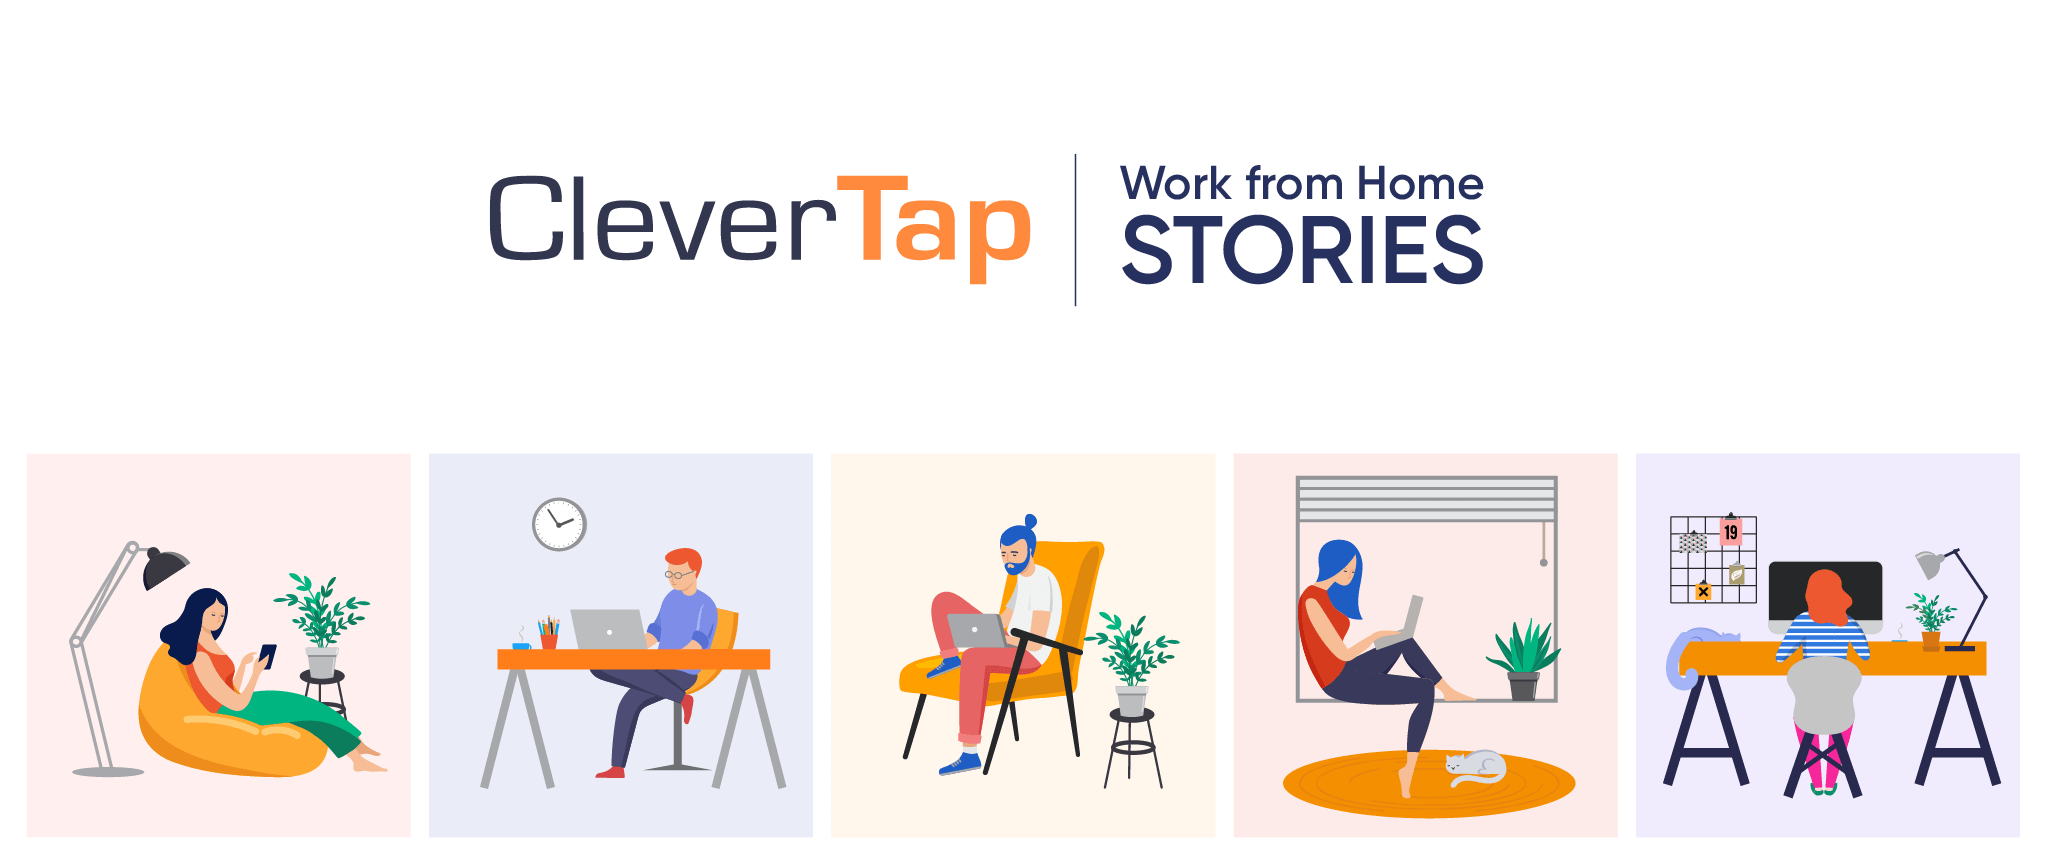 Collaborating Remotely for Work & Beyond: Stories from CleverTap Employees